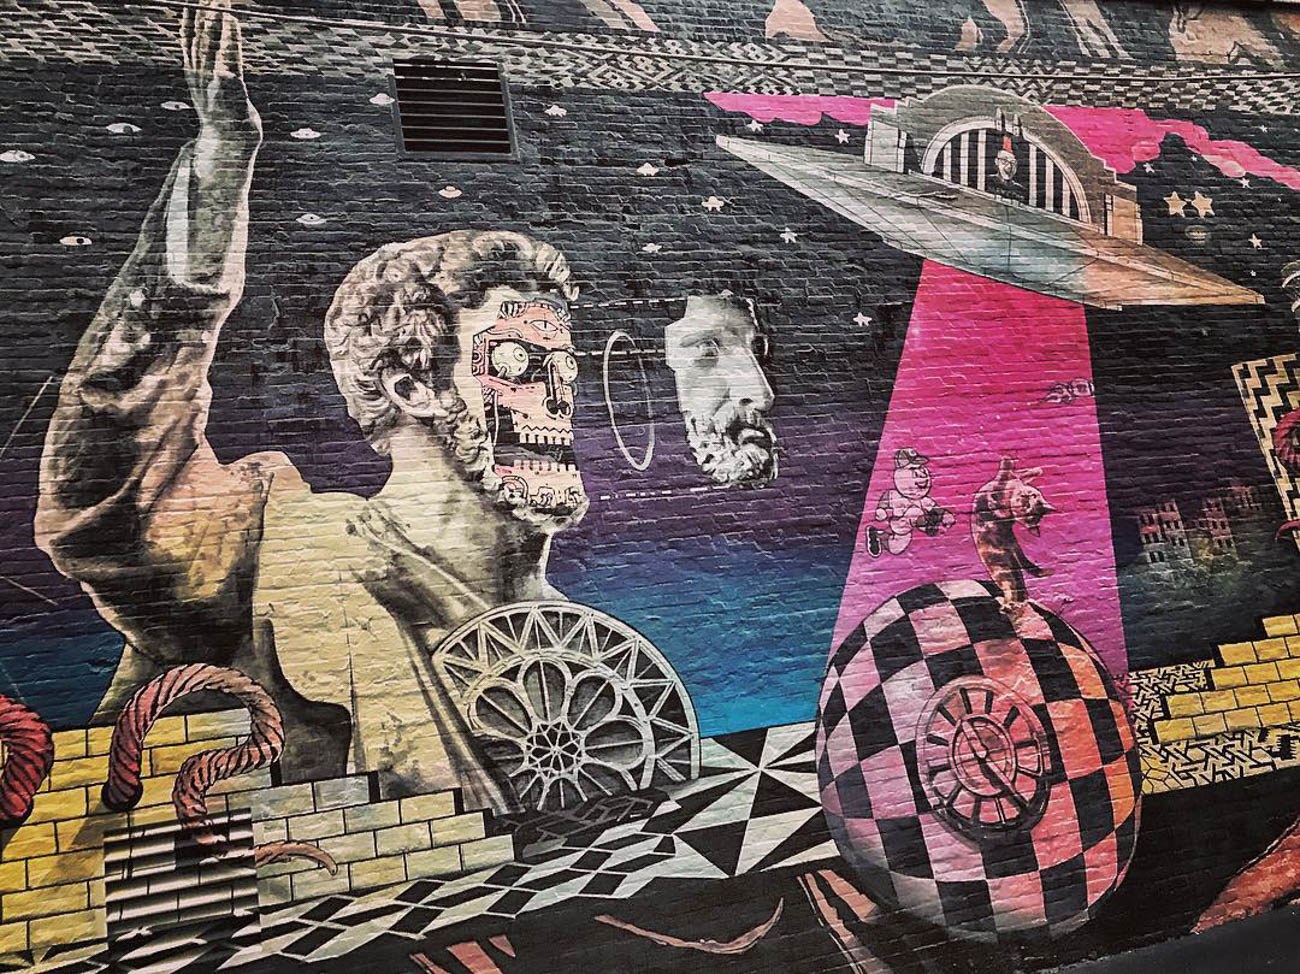 There are plenty of fascinating murals painted on walls throughout the city to enjoy. This one can be found on the side of the Know Theatre of Cincinnati building. / Image courtesy of Instagram user @prblog // Published: 3.20.19